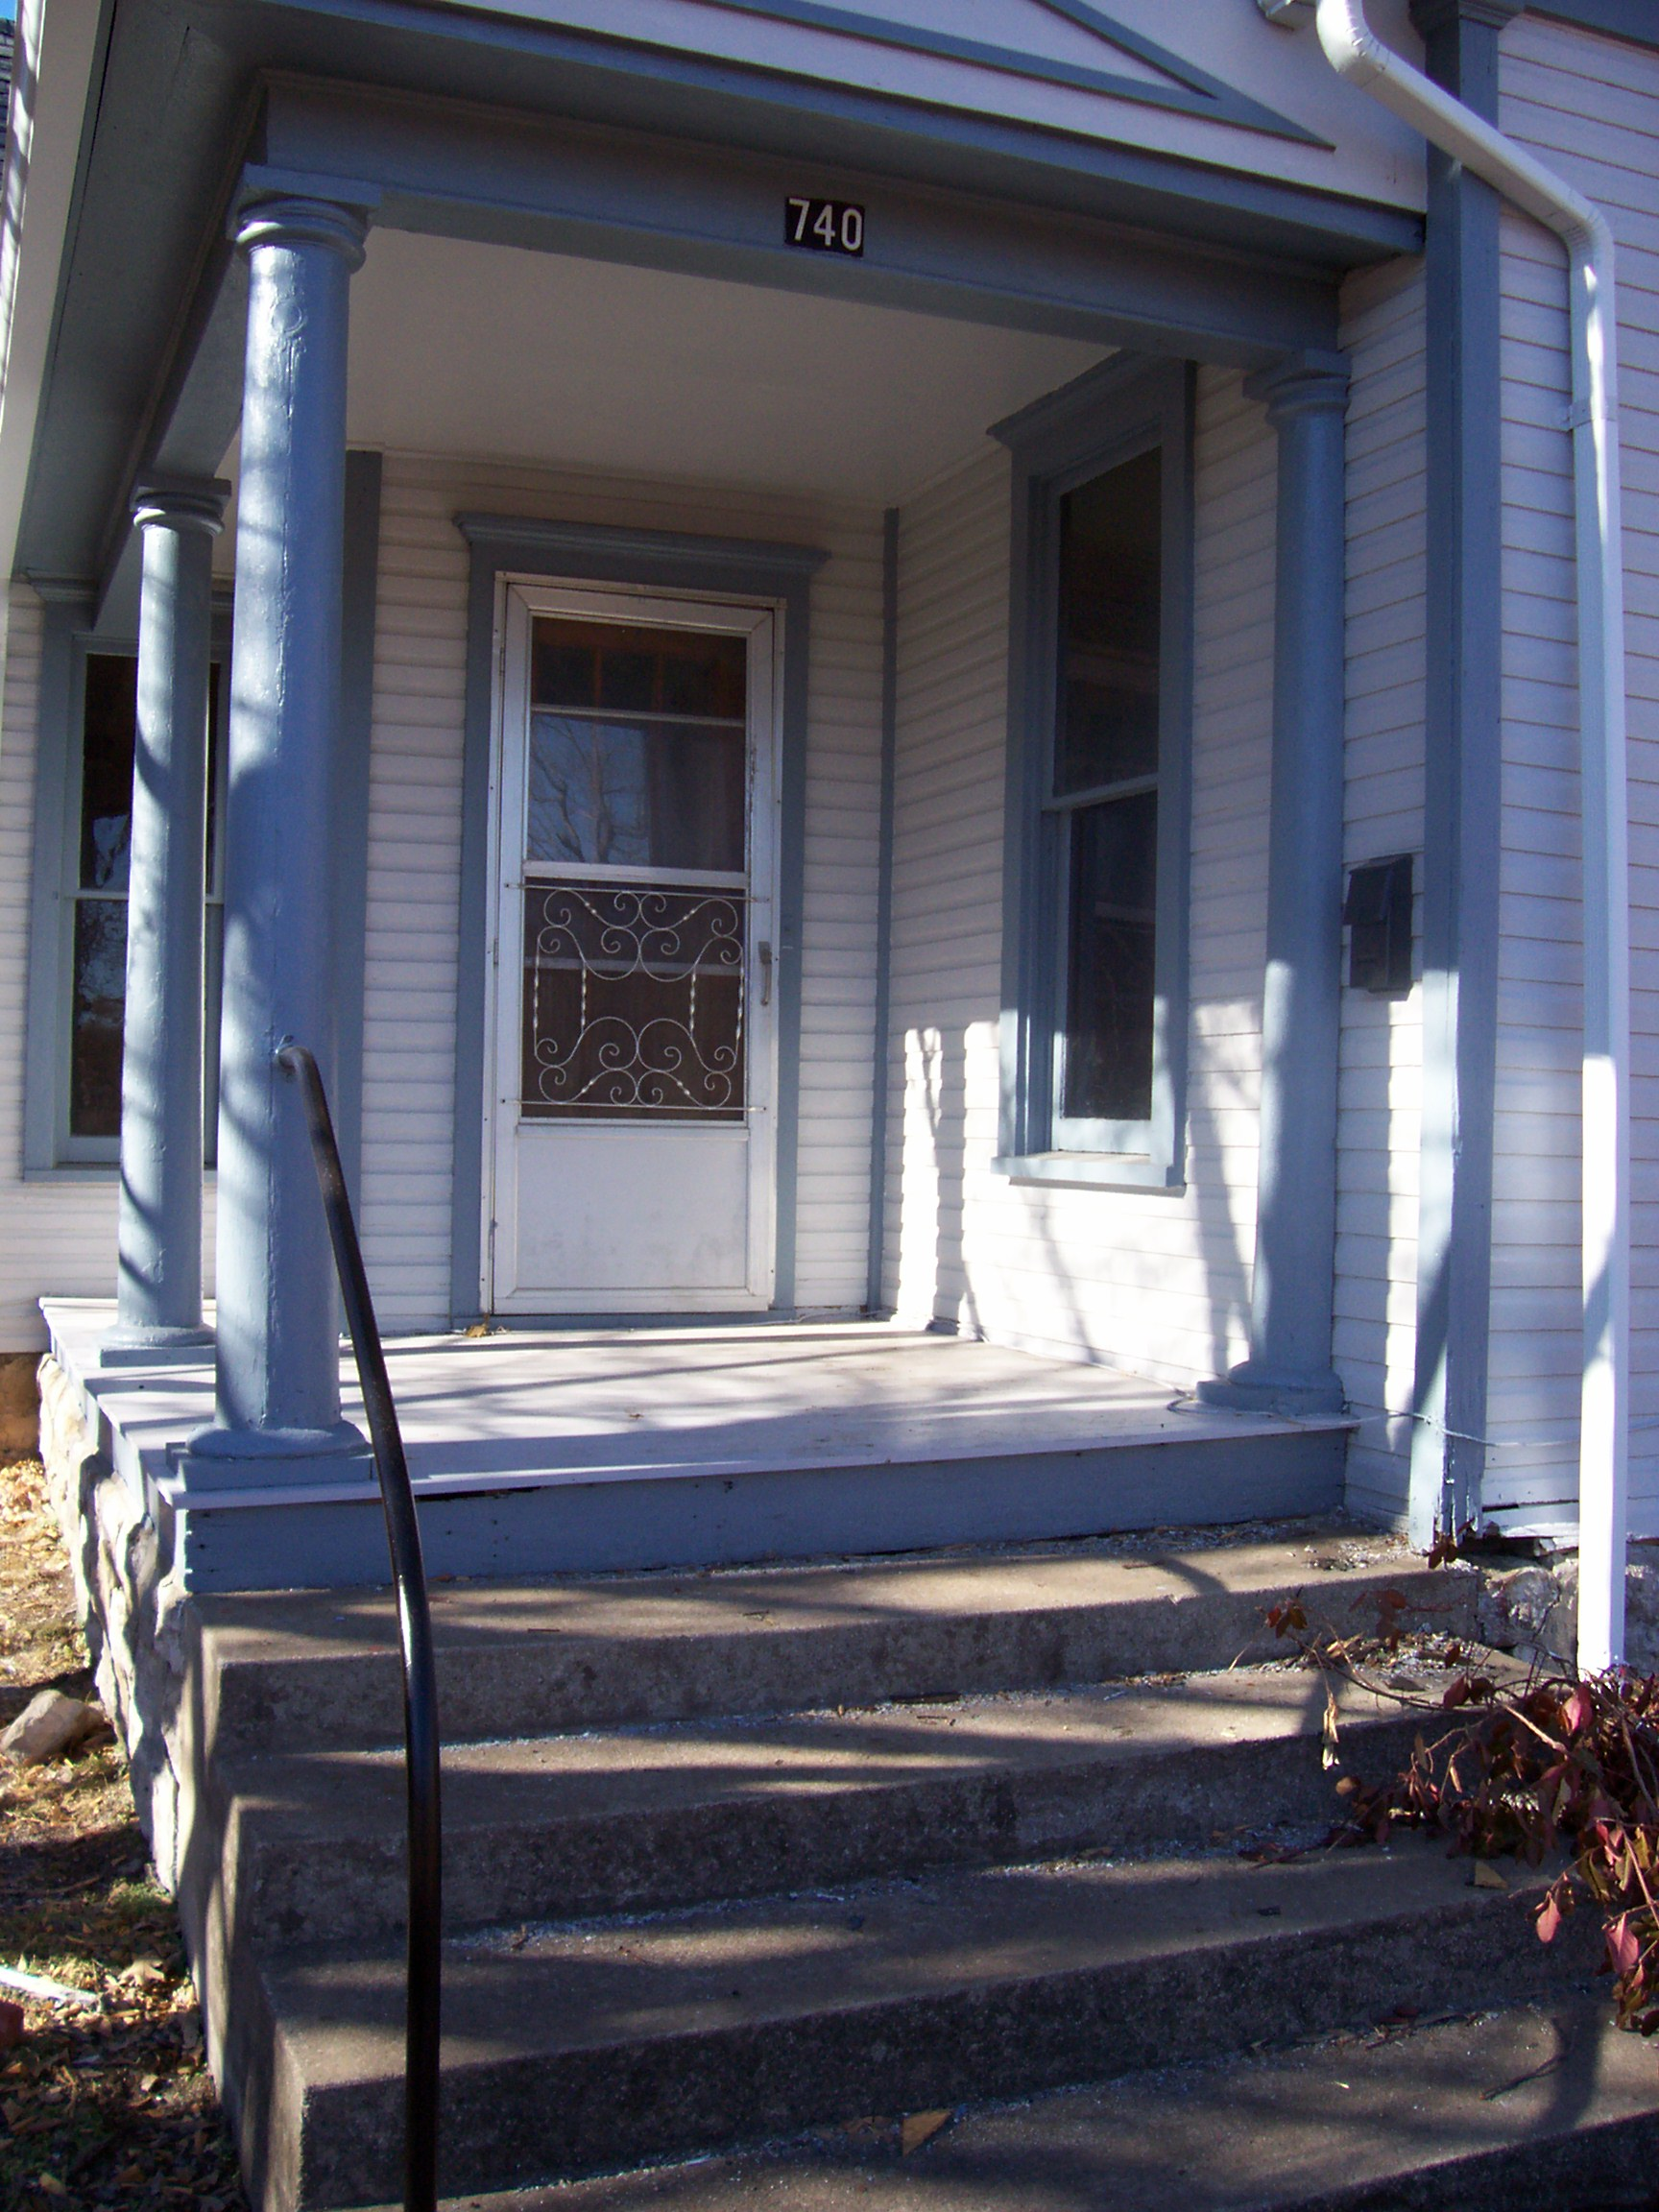 744 S Main, Fort Scott, Bourbon County, Kansas, United States 66701, 2 Bedrooms Bedrooms, ,1 BathroomBathrooms,House,For Rent,S Main,1,1021